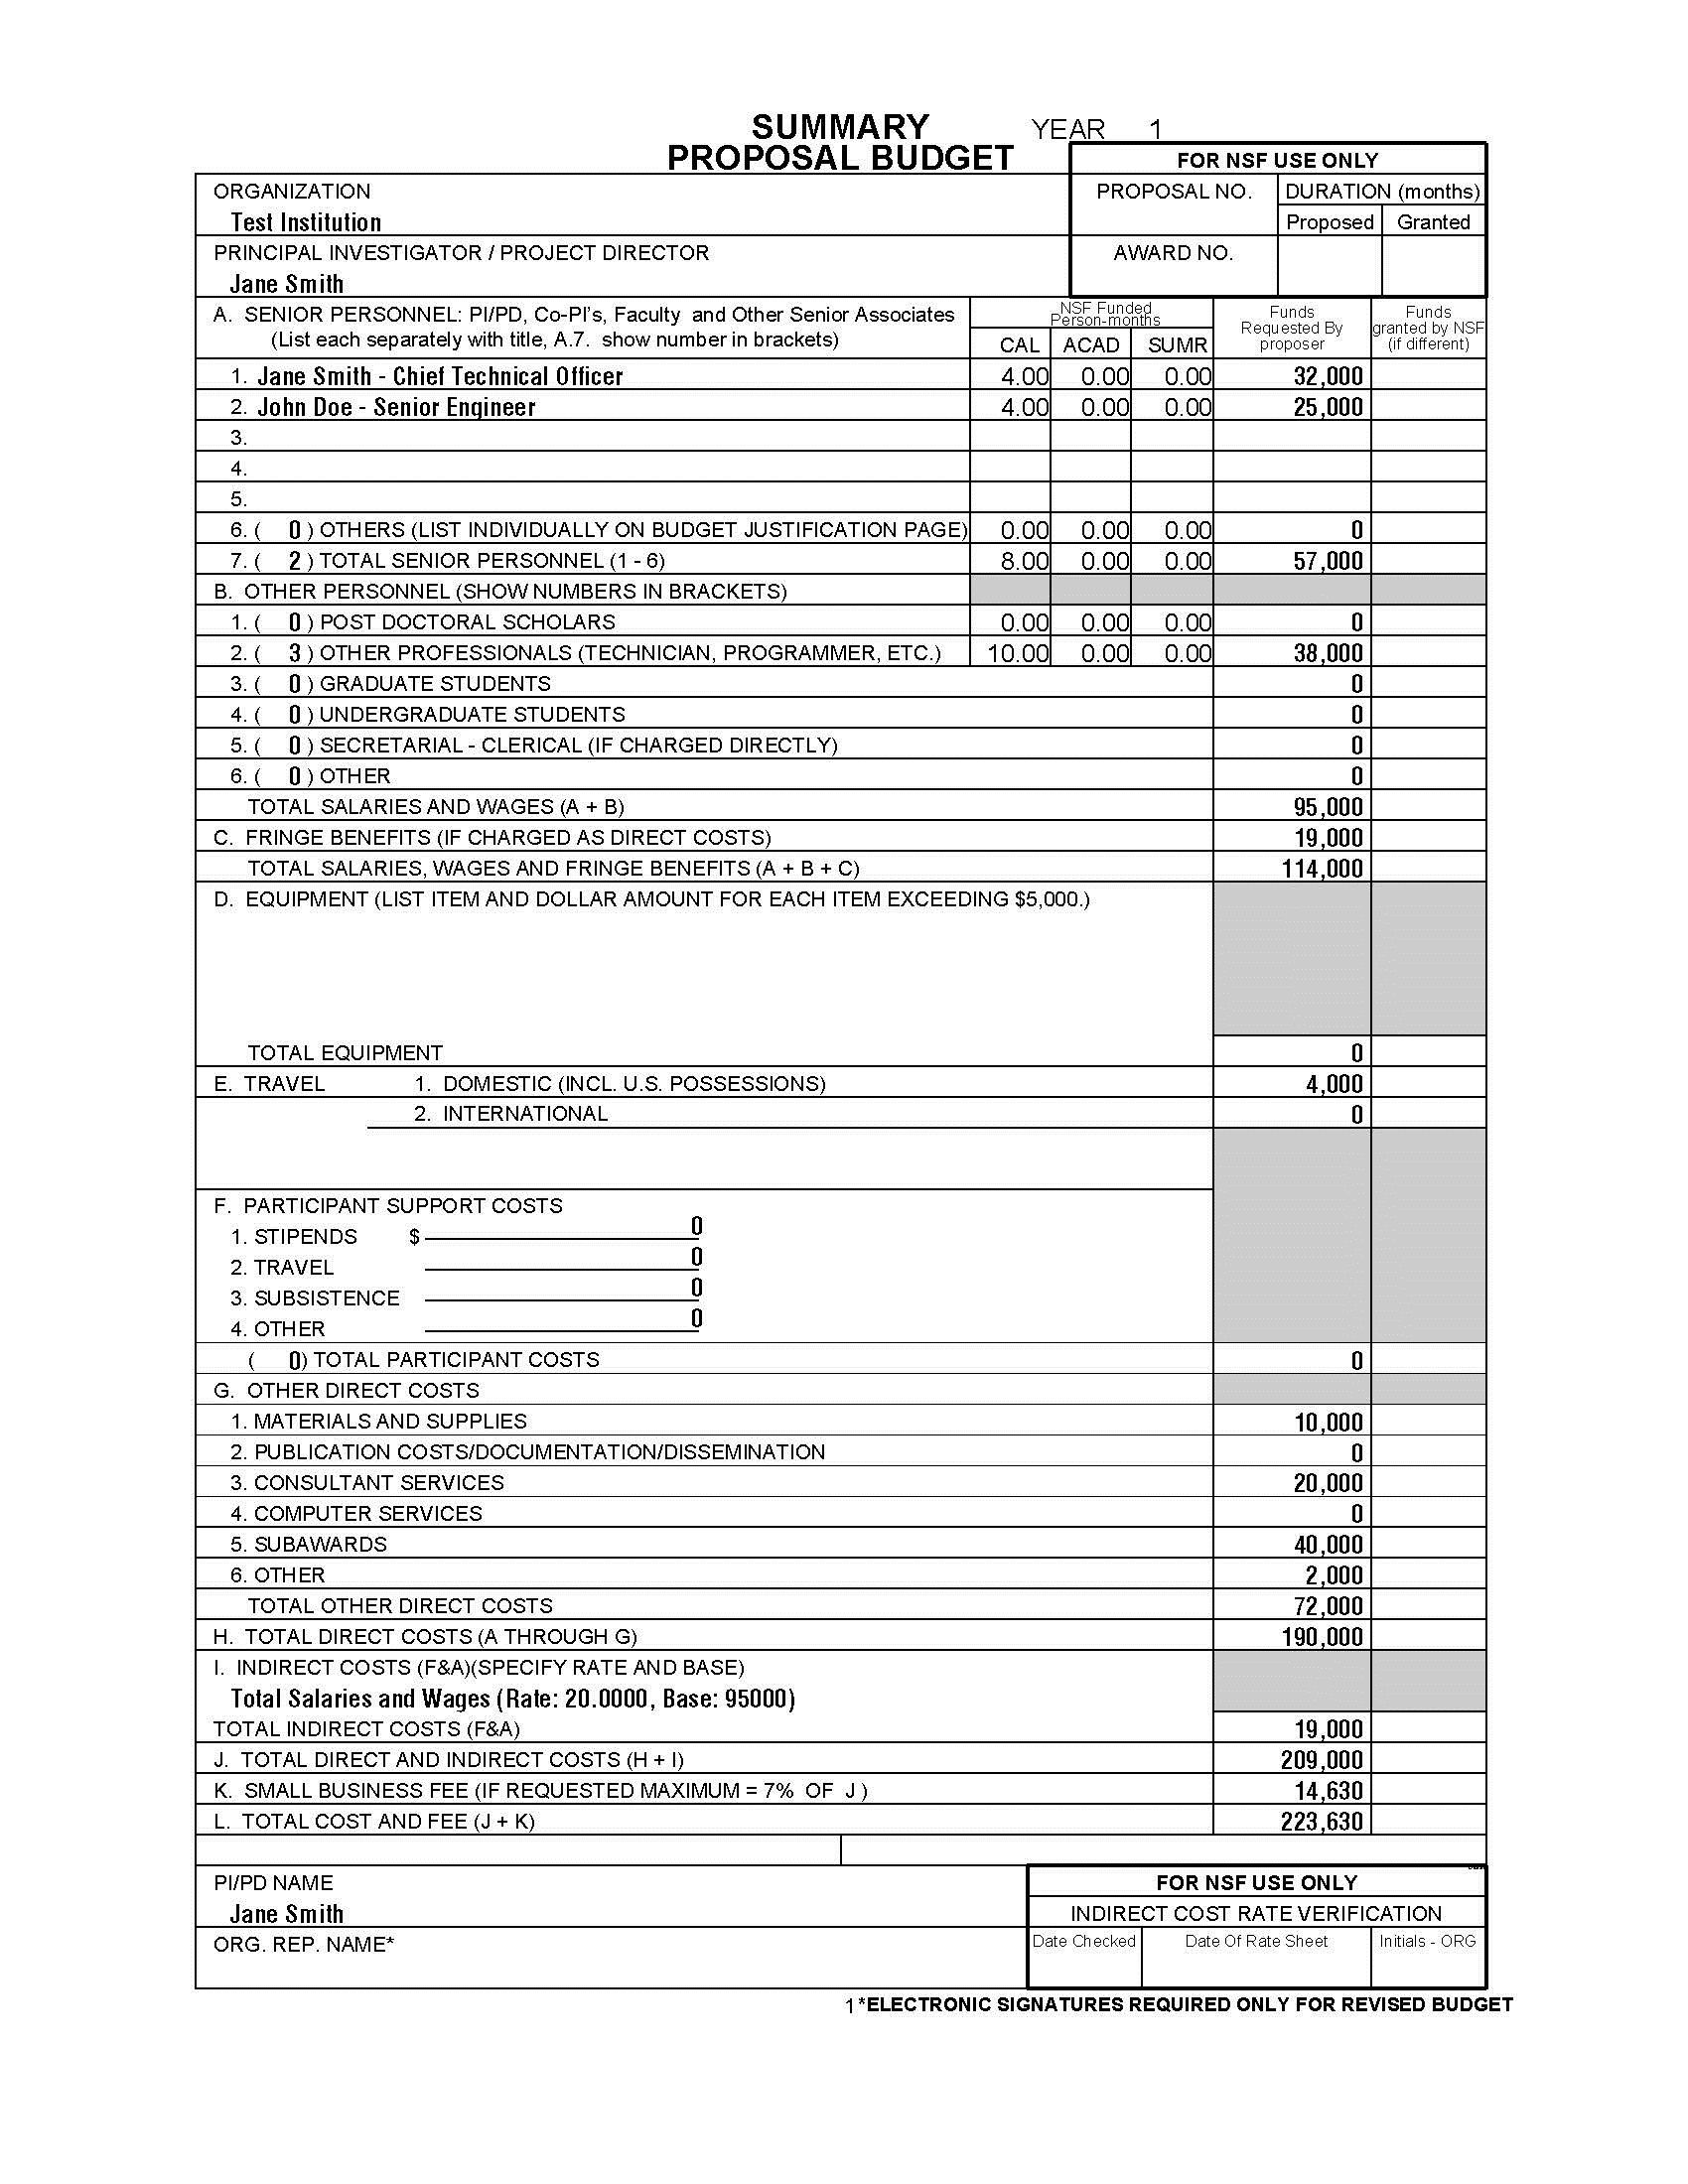 000 Fascinating Line Item Operating Budget Example Idea  Line-item For Police Department Of Template Meaning WithFull